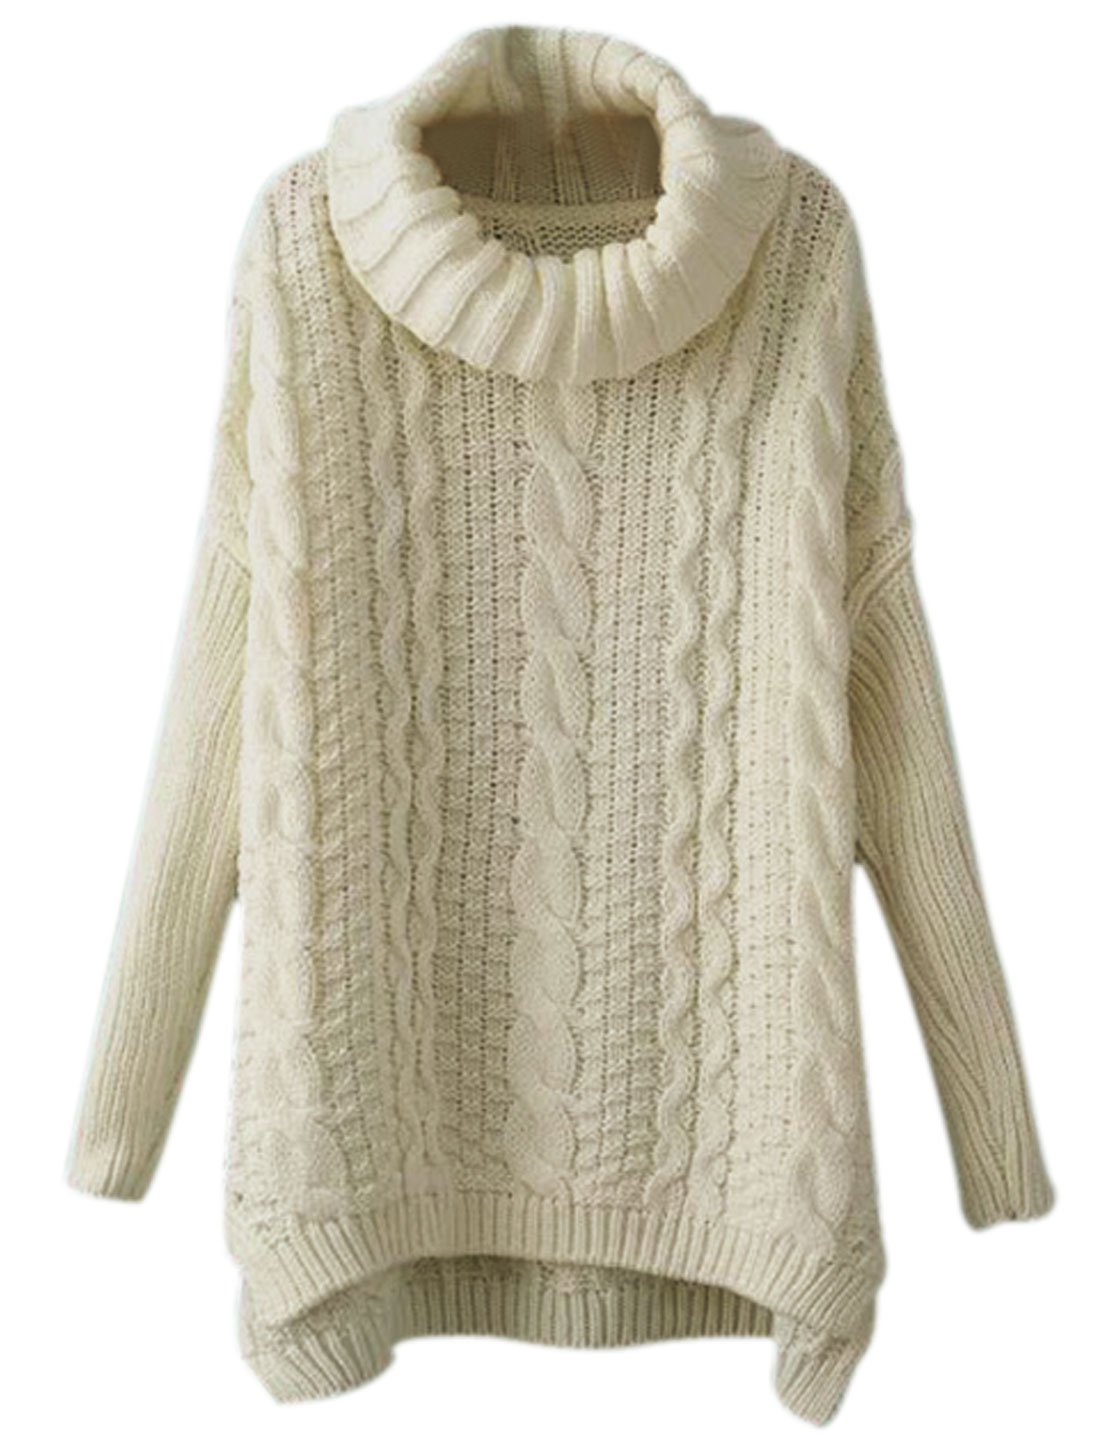 Low High Hem Turtle Neck Pullover Beige Tunic Sweater for Lady M